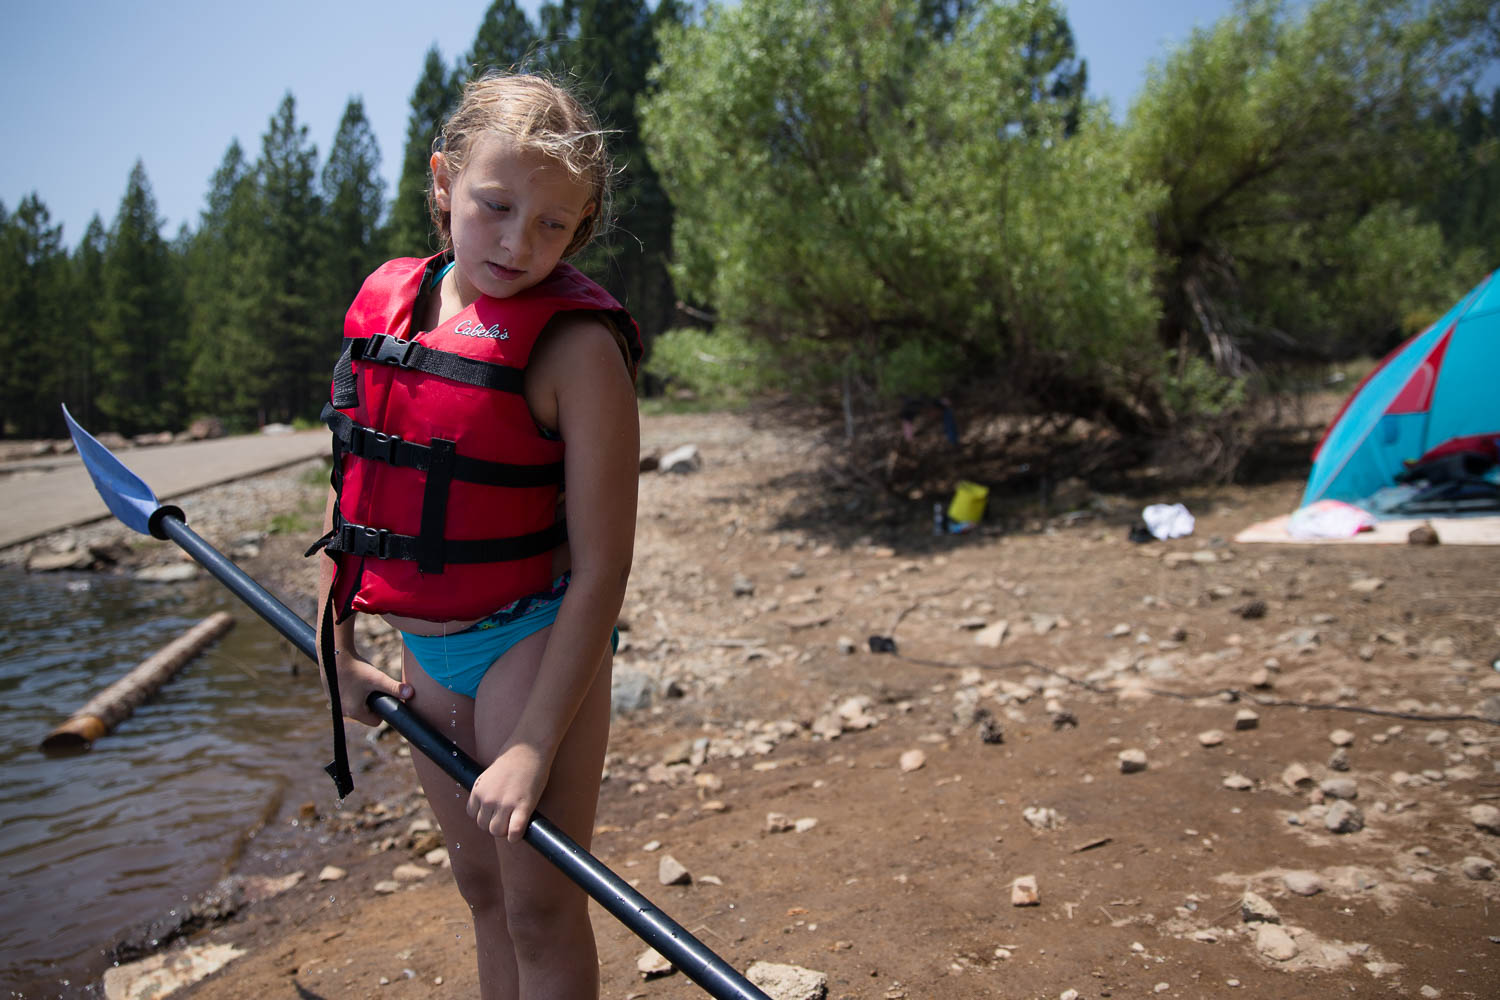 Young girl waiting to go into the water and kayak at the lake while family is camping.